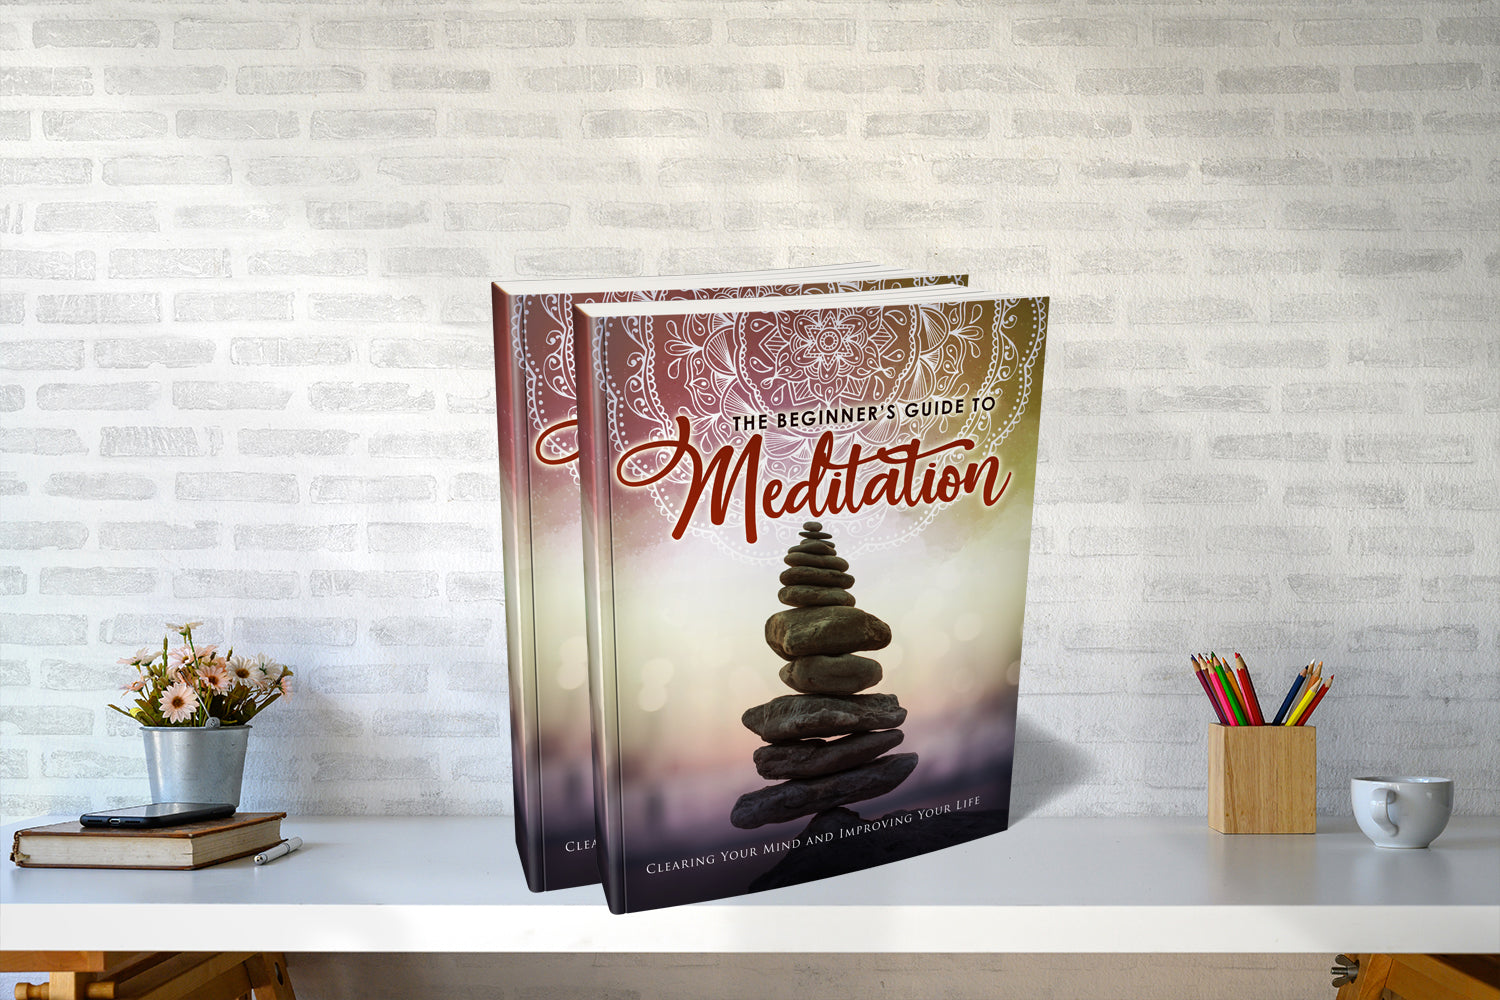 The Beginner's Guide To Meditation – Clear Your Mind And Improving Your Life